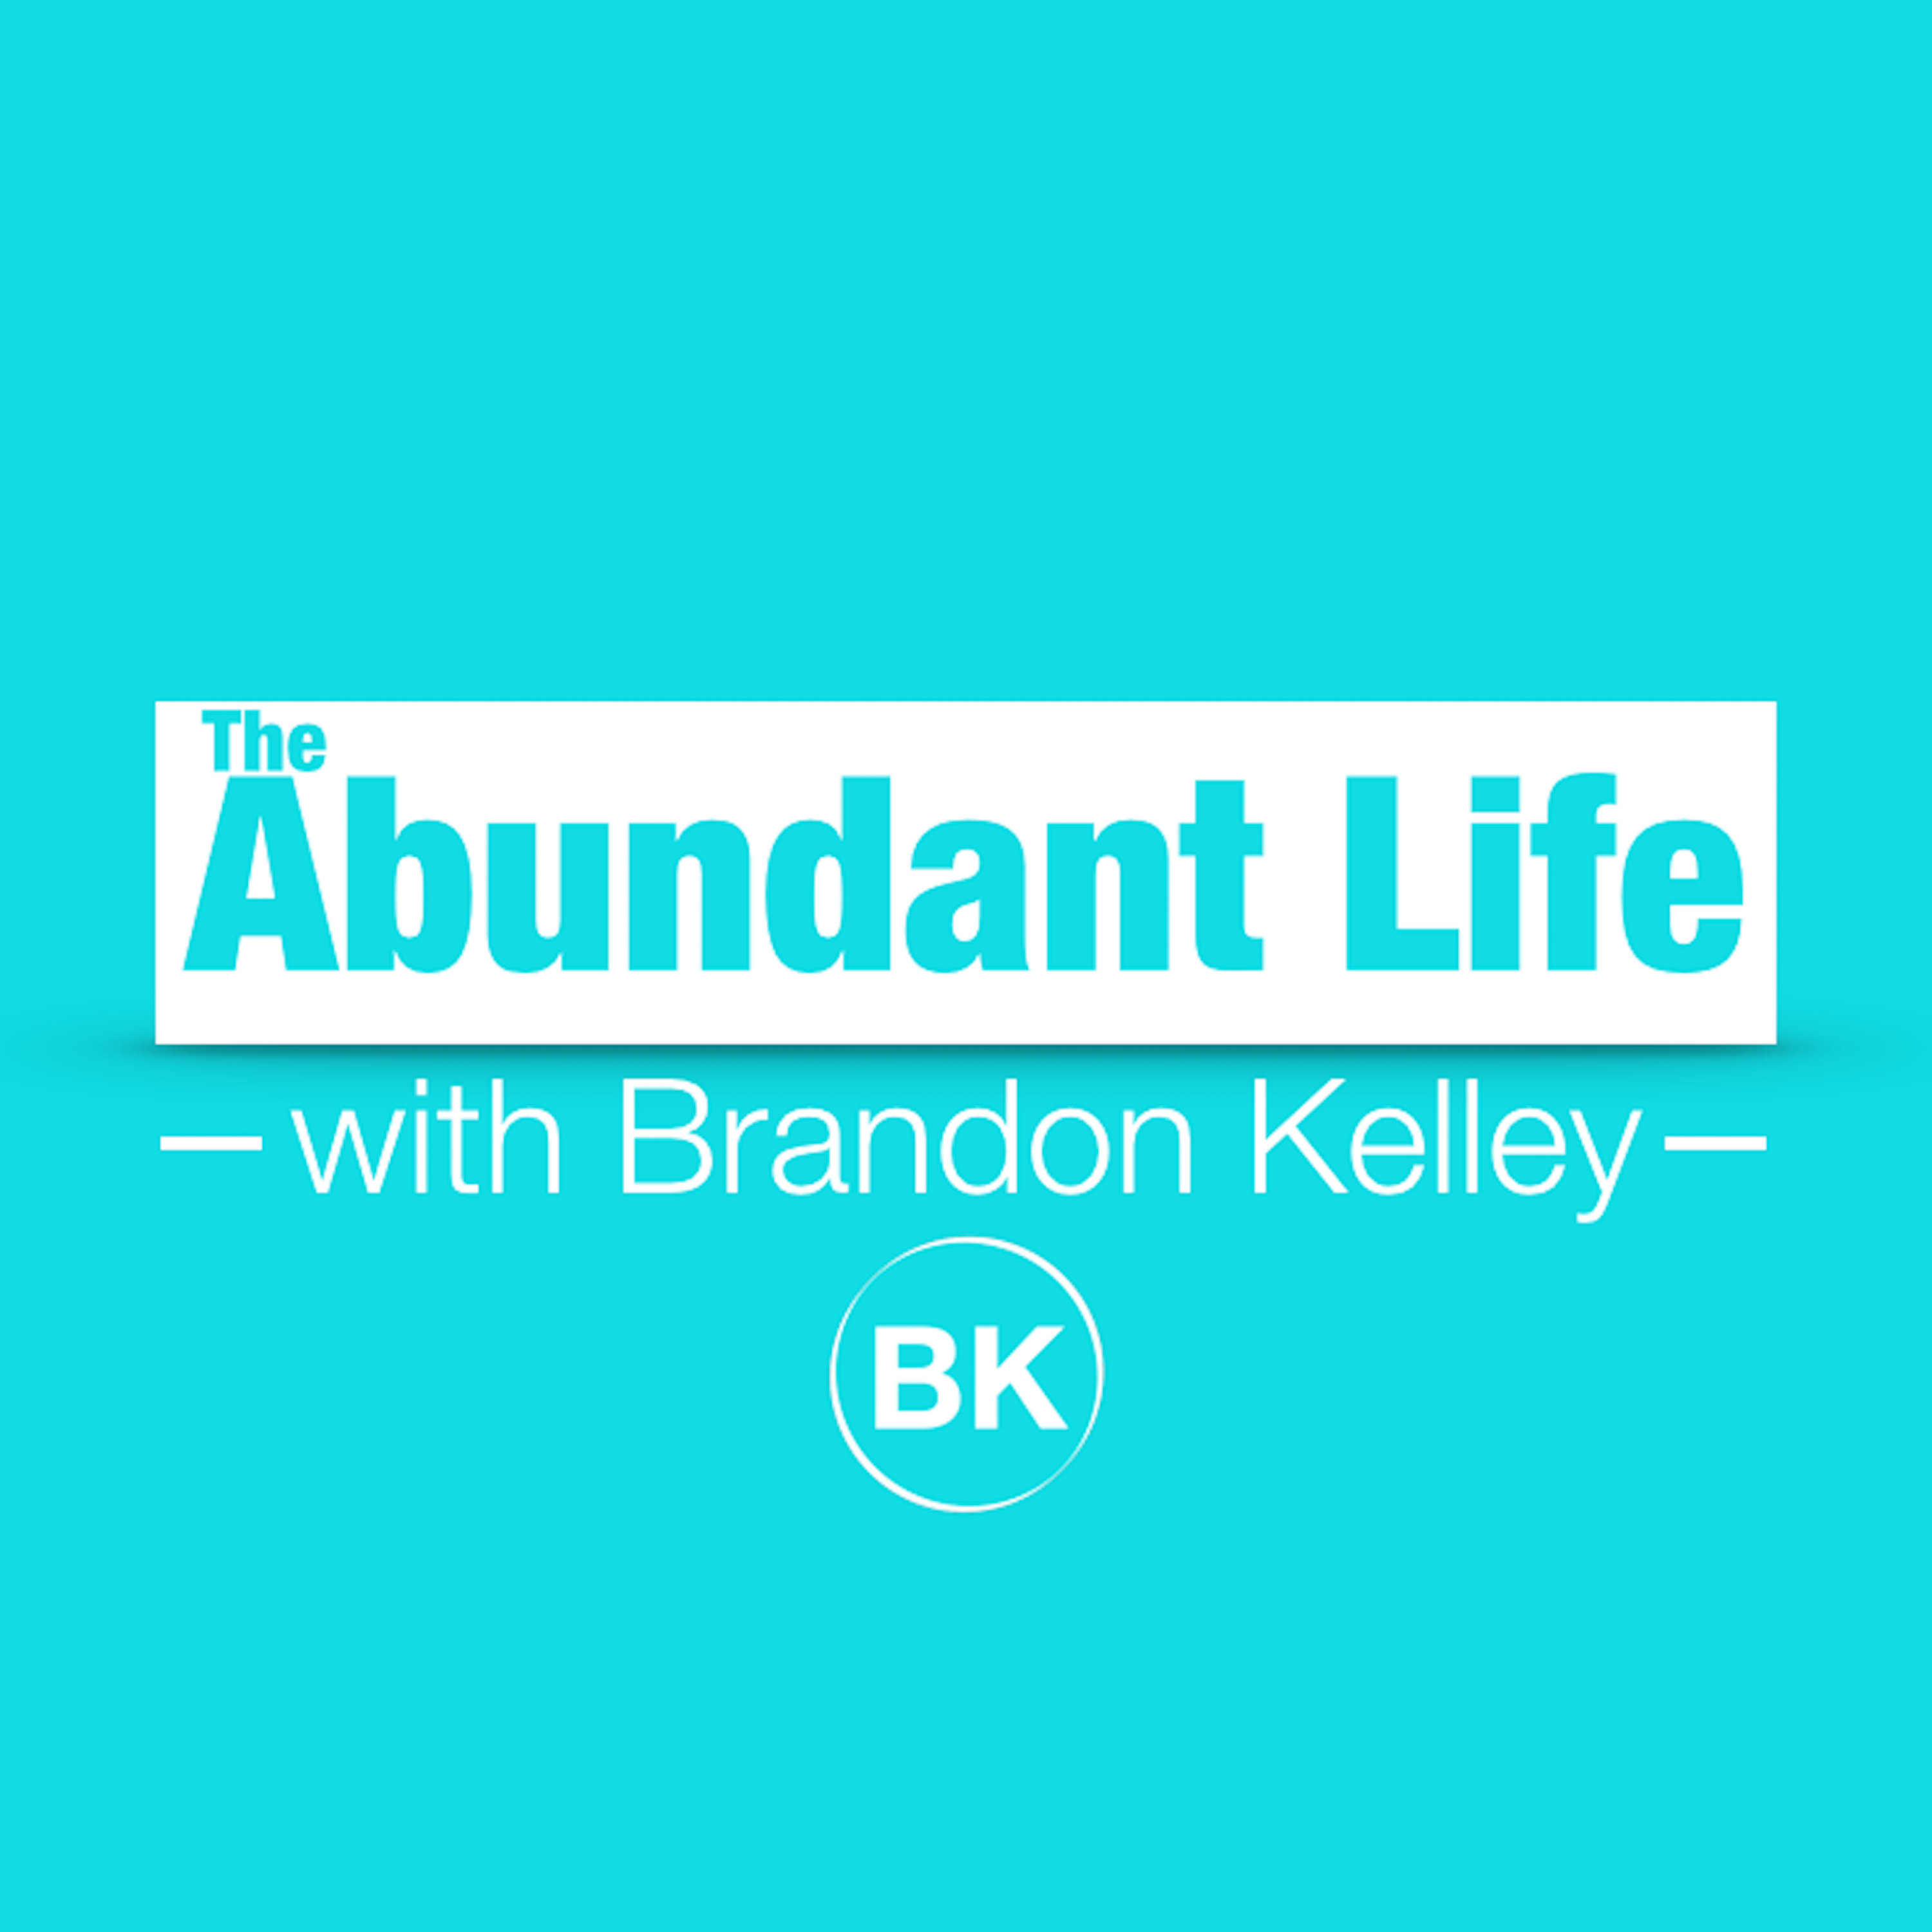 The Abundant Life: Brandon Kelley